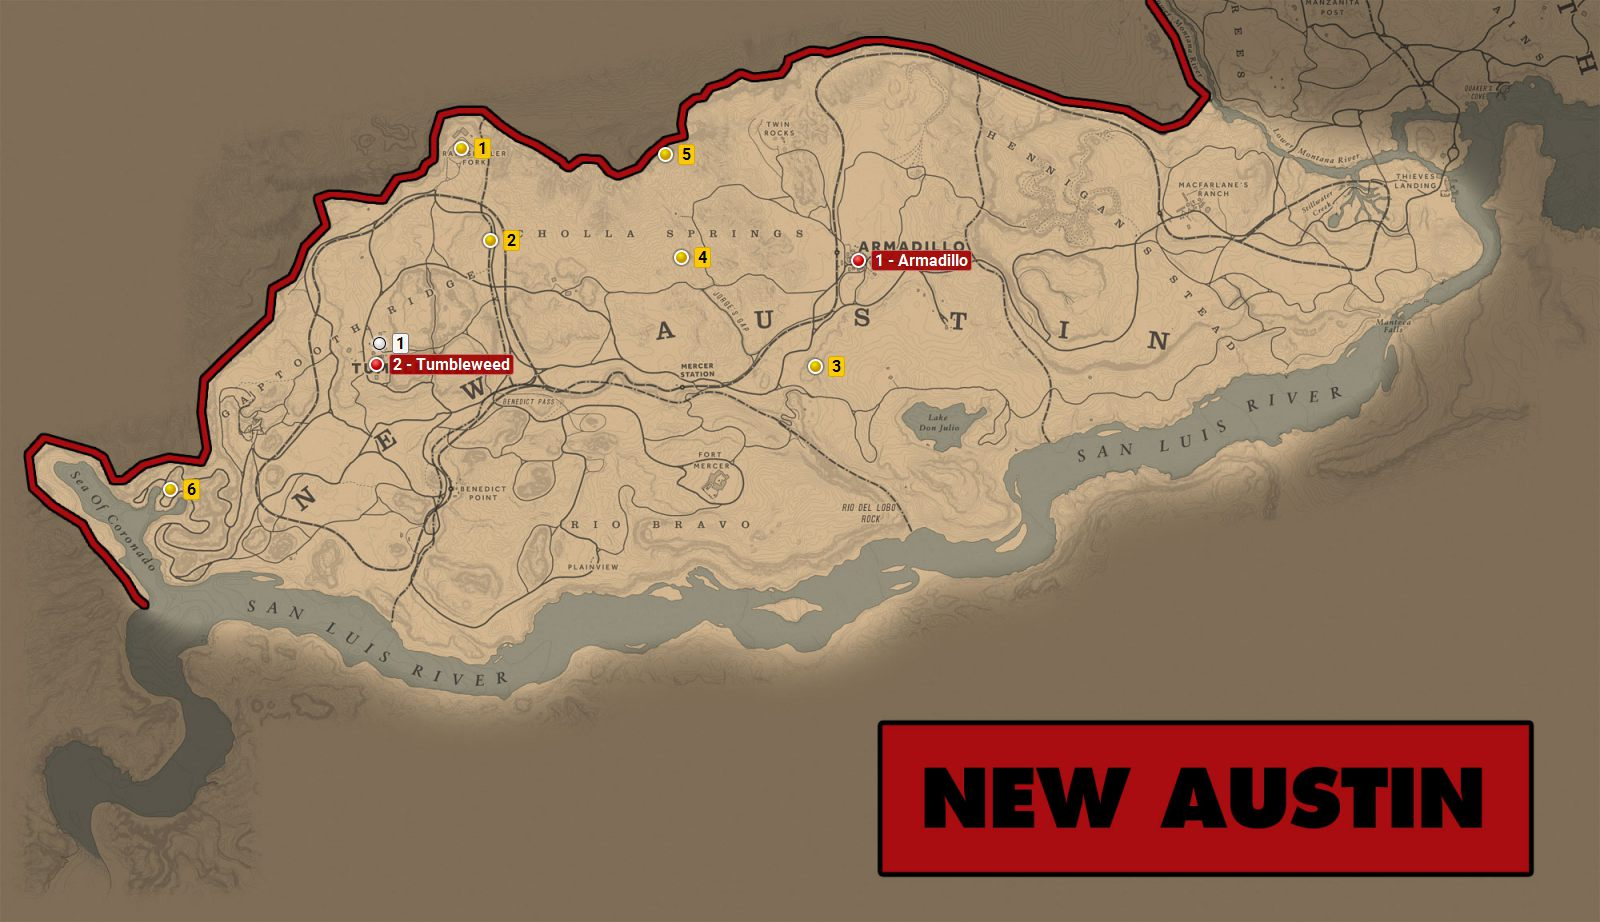 Red Dead 2 World Map.New Austin Red Dead Redemption 2 World Atlas Map Red Dead